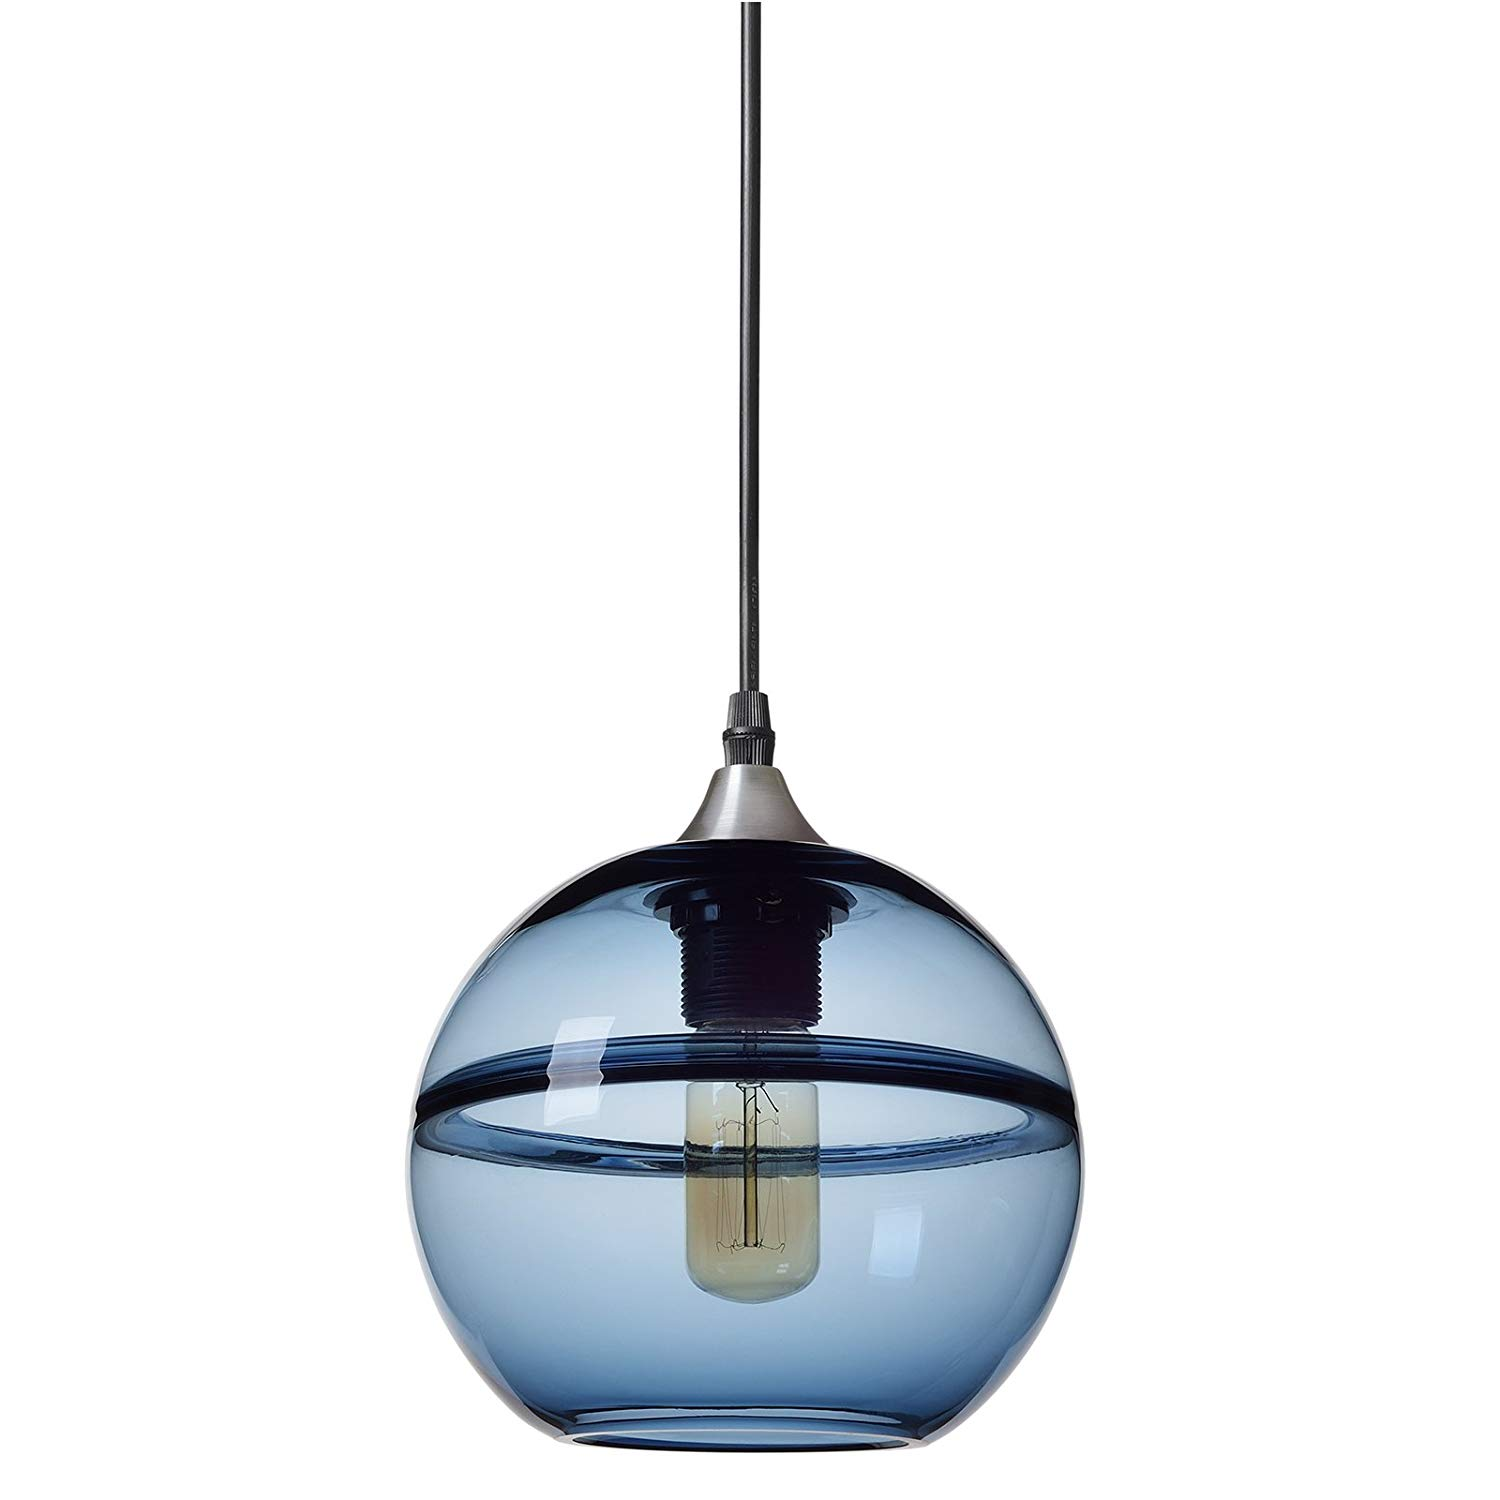 Pendant Lighting Handblown Glass Drop Hanging Light Unique Optic Glass Pendant Lamp Brushed Nickel Finish Grey Blue 7 Csm 0012 China Factory Suppliers Manufacturers